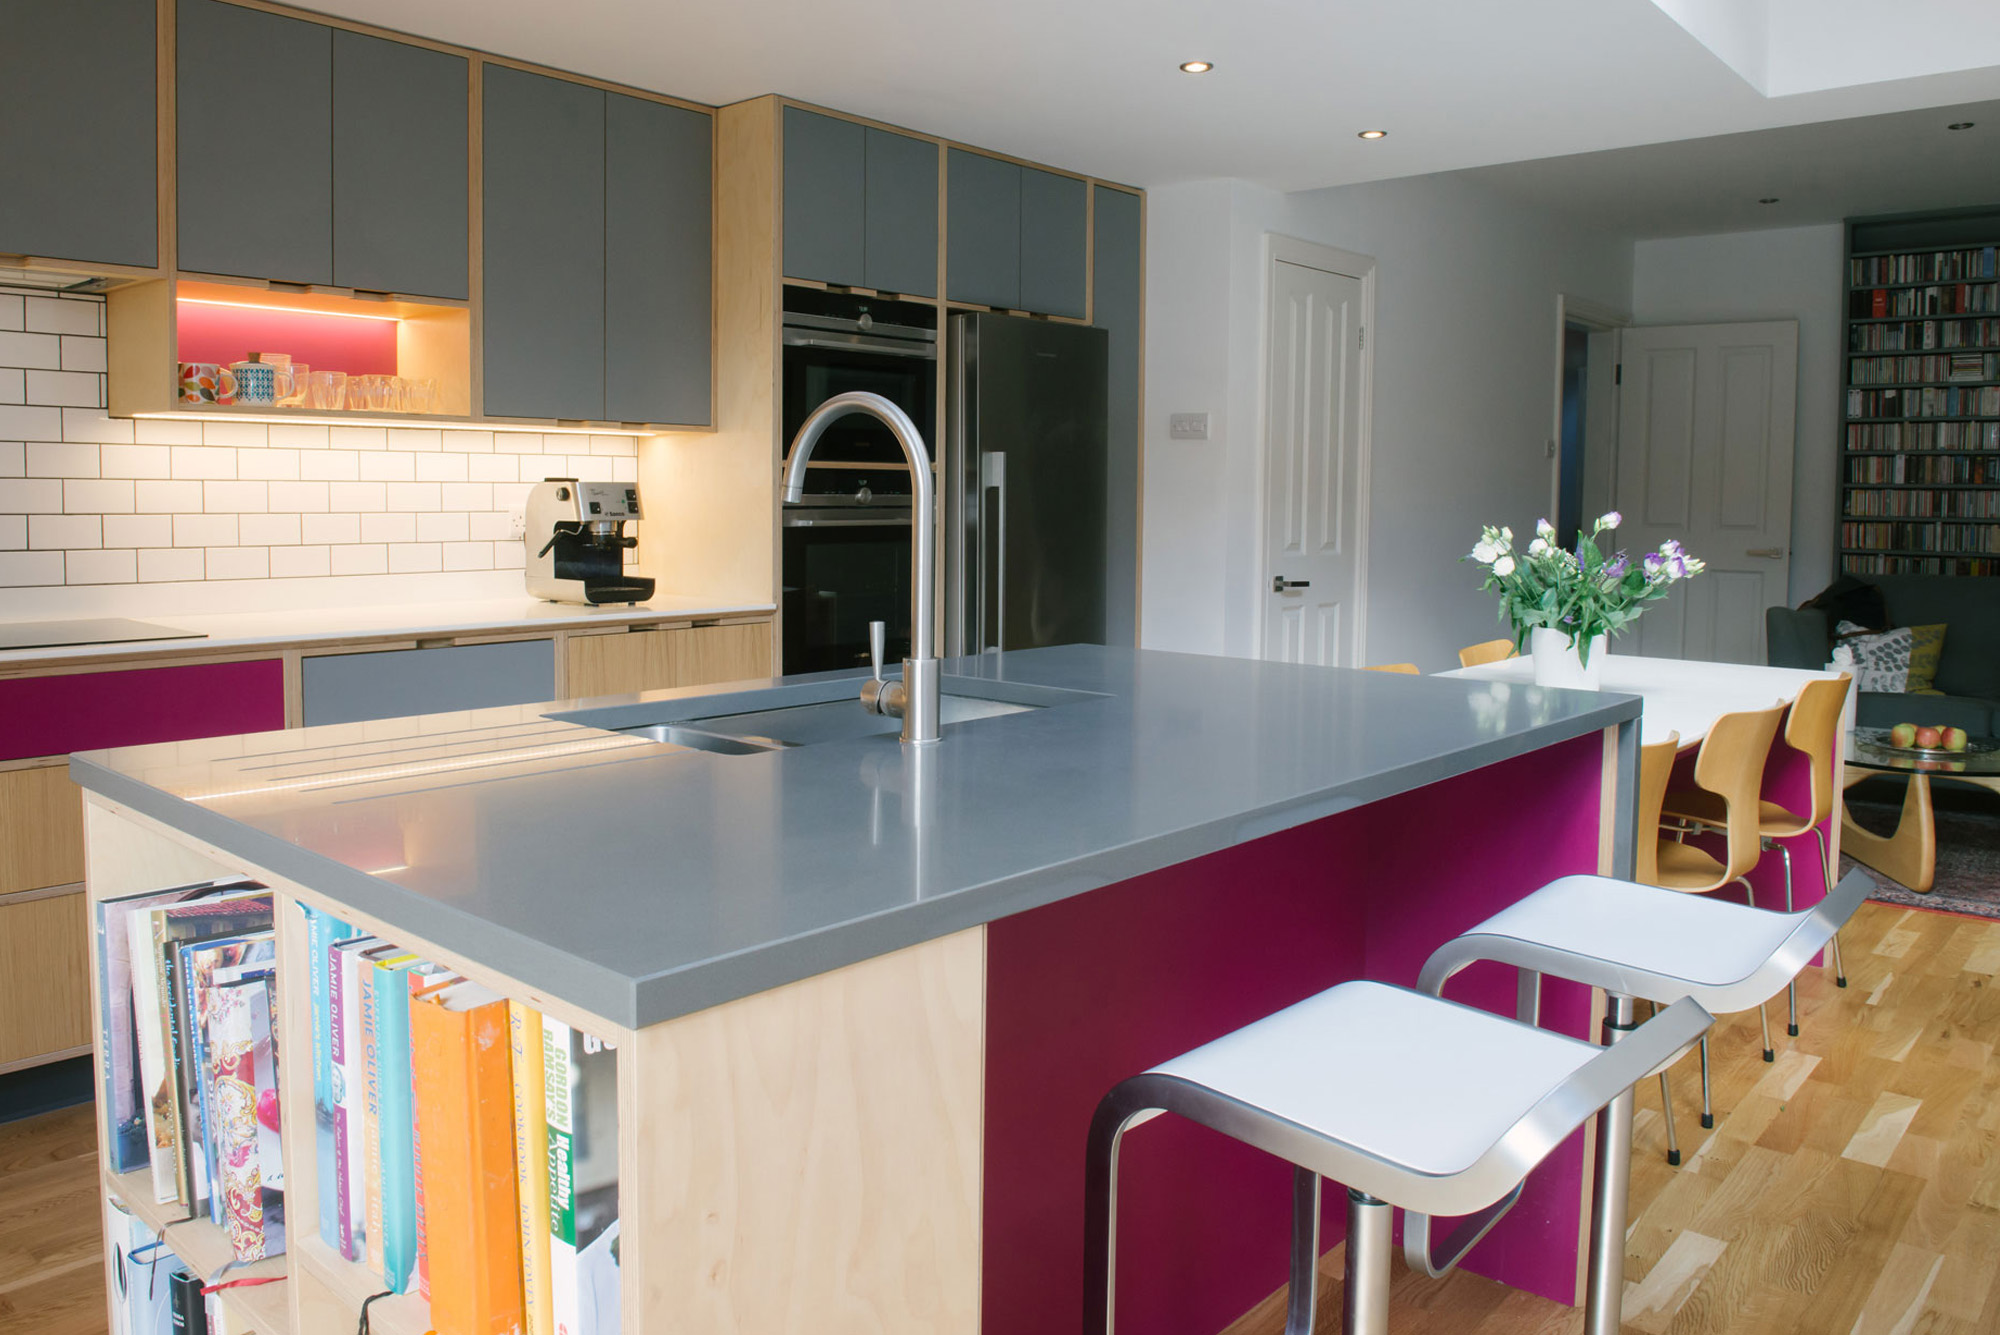 Pink and grey plywood kitchen